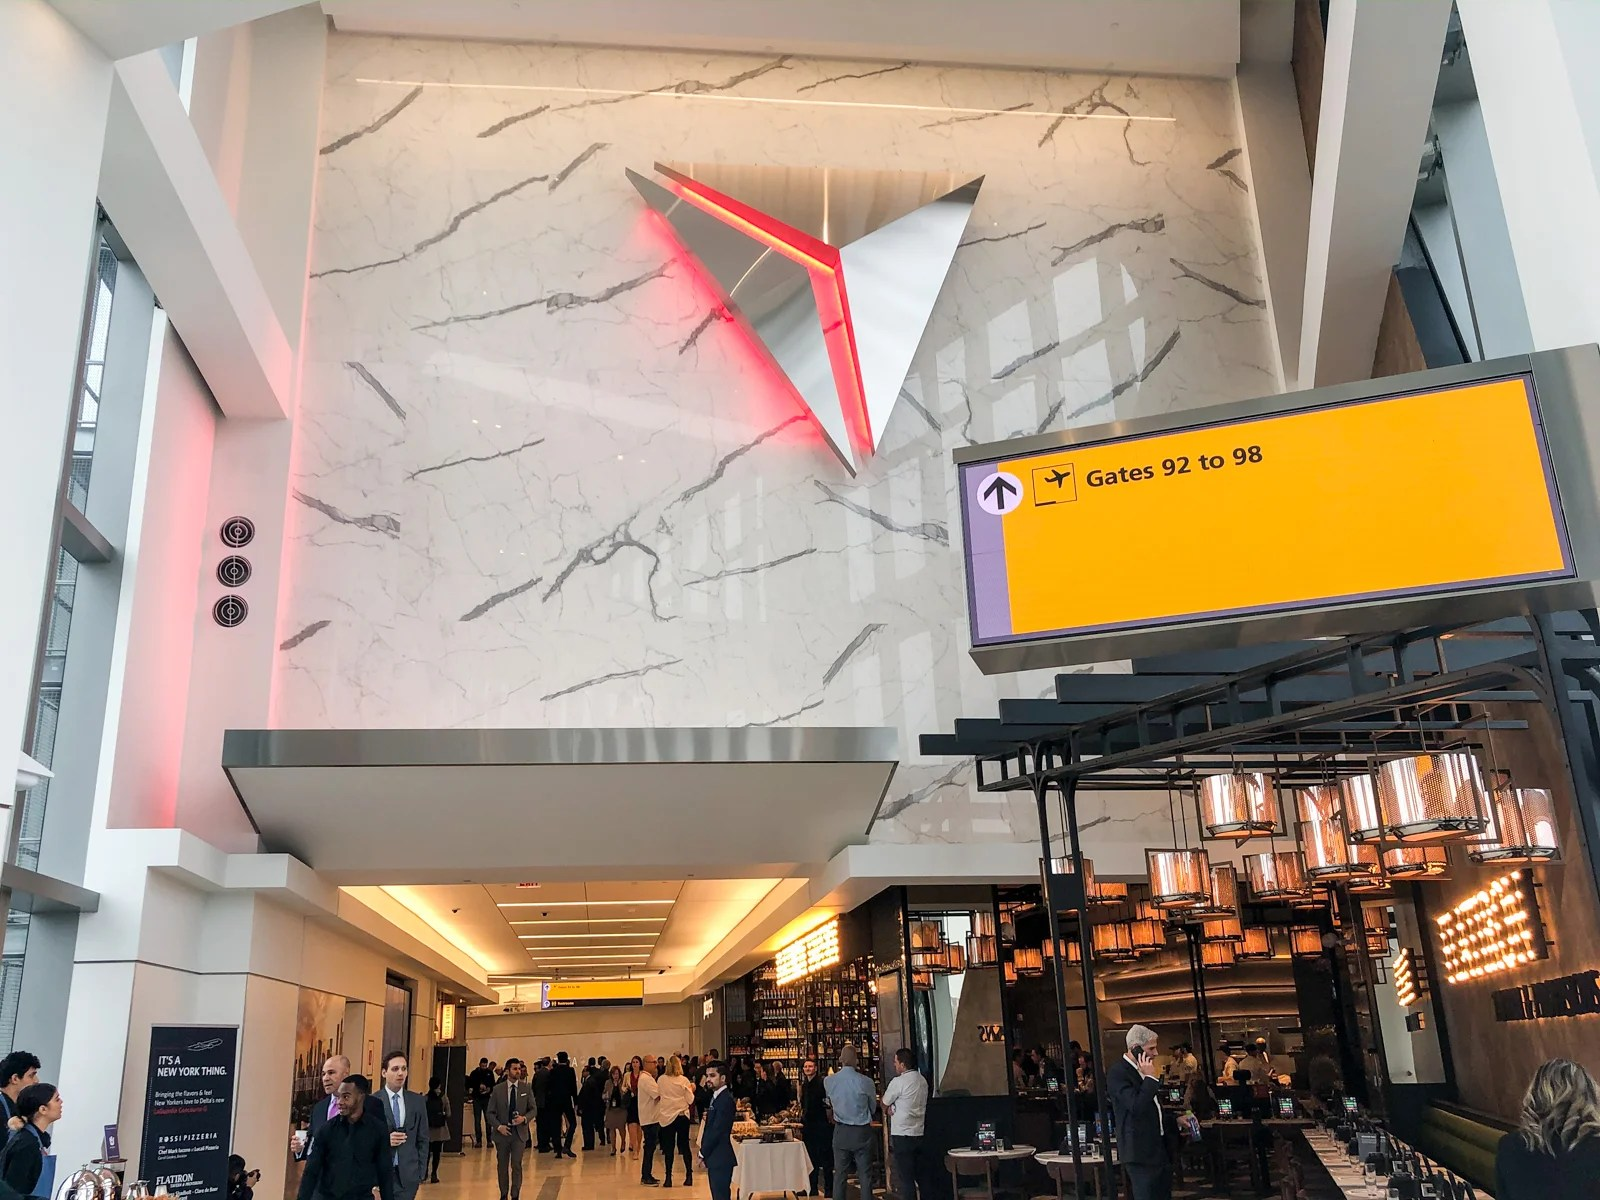 Delta's new concourse is a tantalizing preview of the LaGuardia renovation